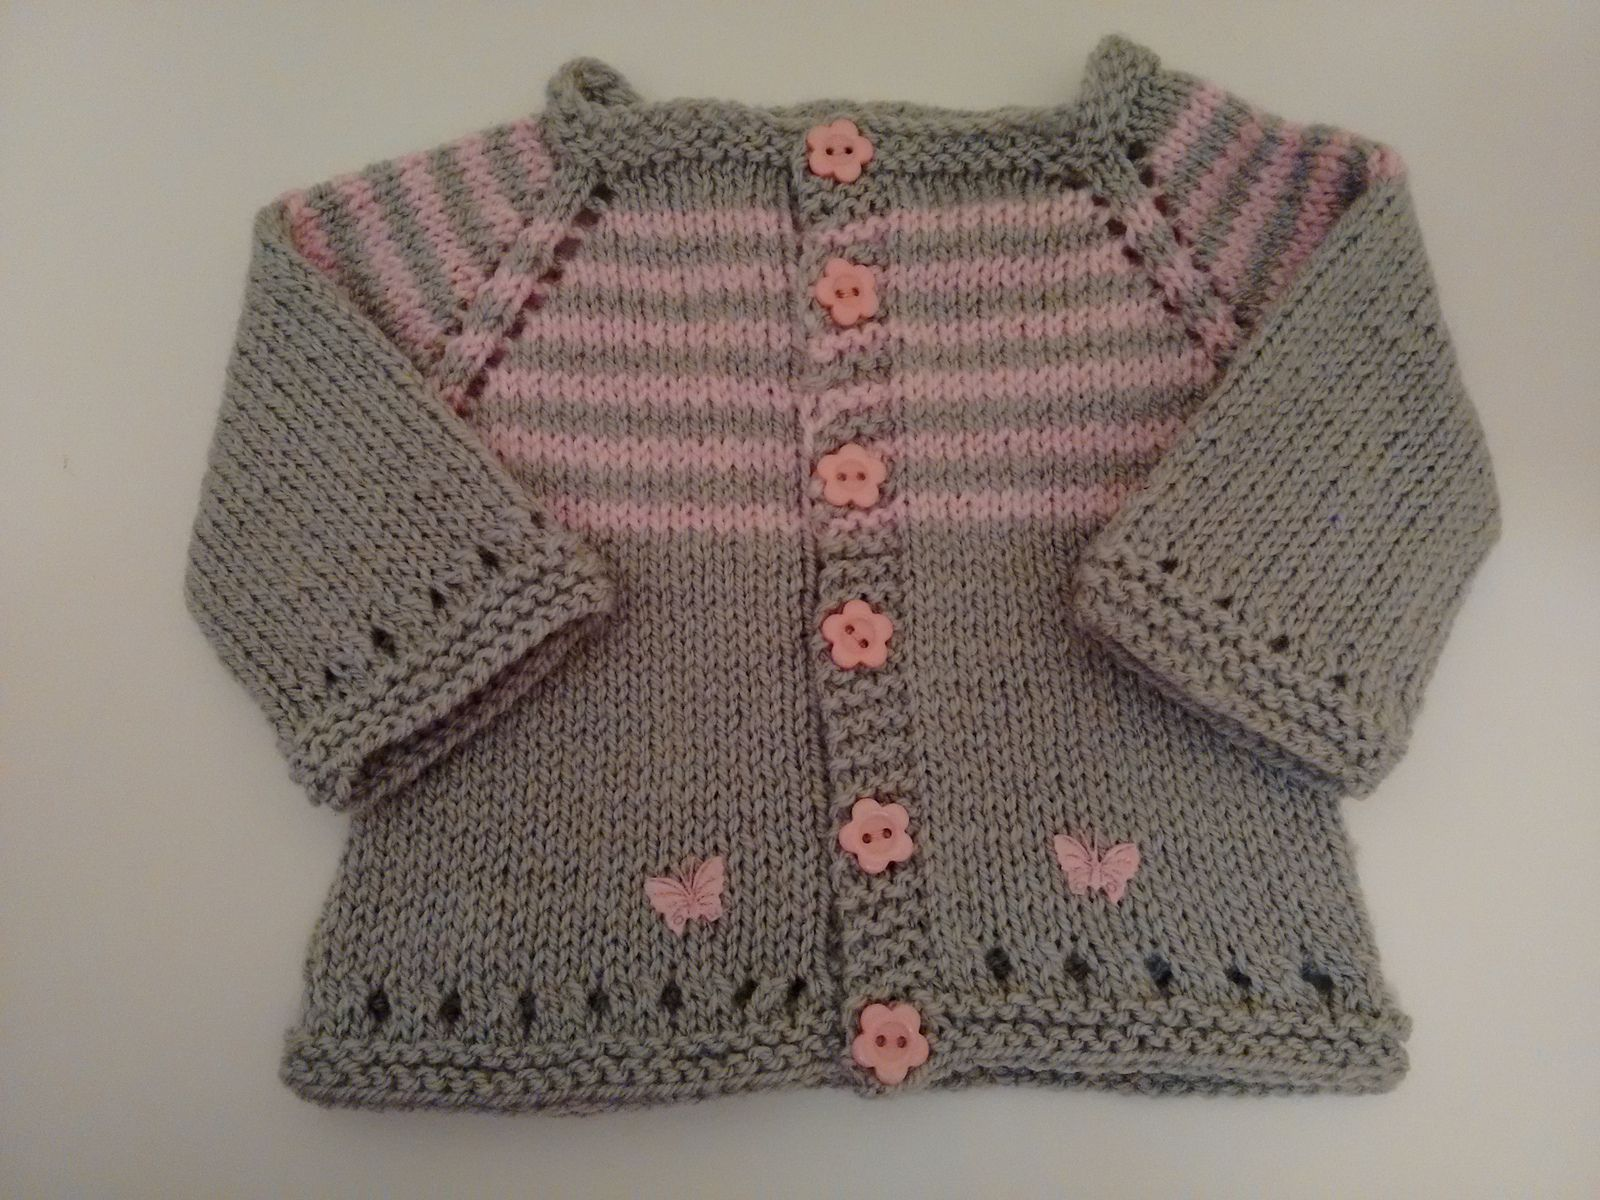 Ravelry maxine baby cardigan jacket by marianna mel kids and ravelry maxine baby cardigan jacket pattern by marianna mel bankloansurffo Choice Image